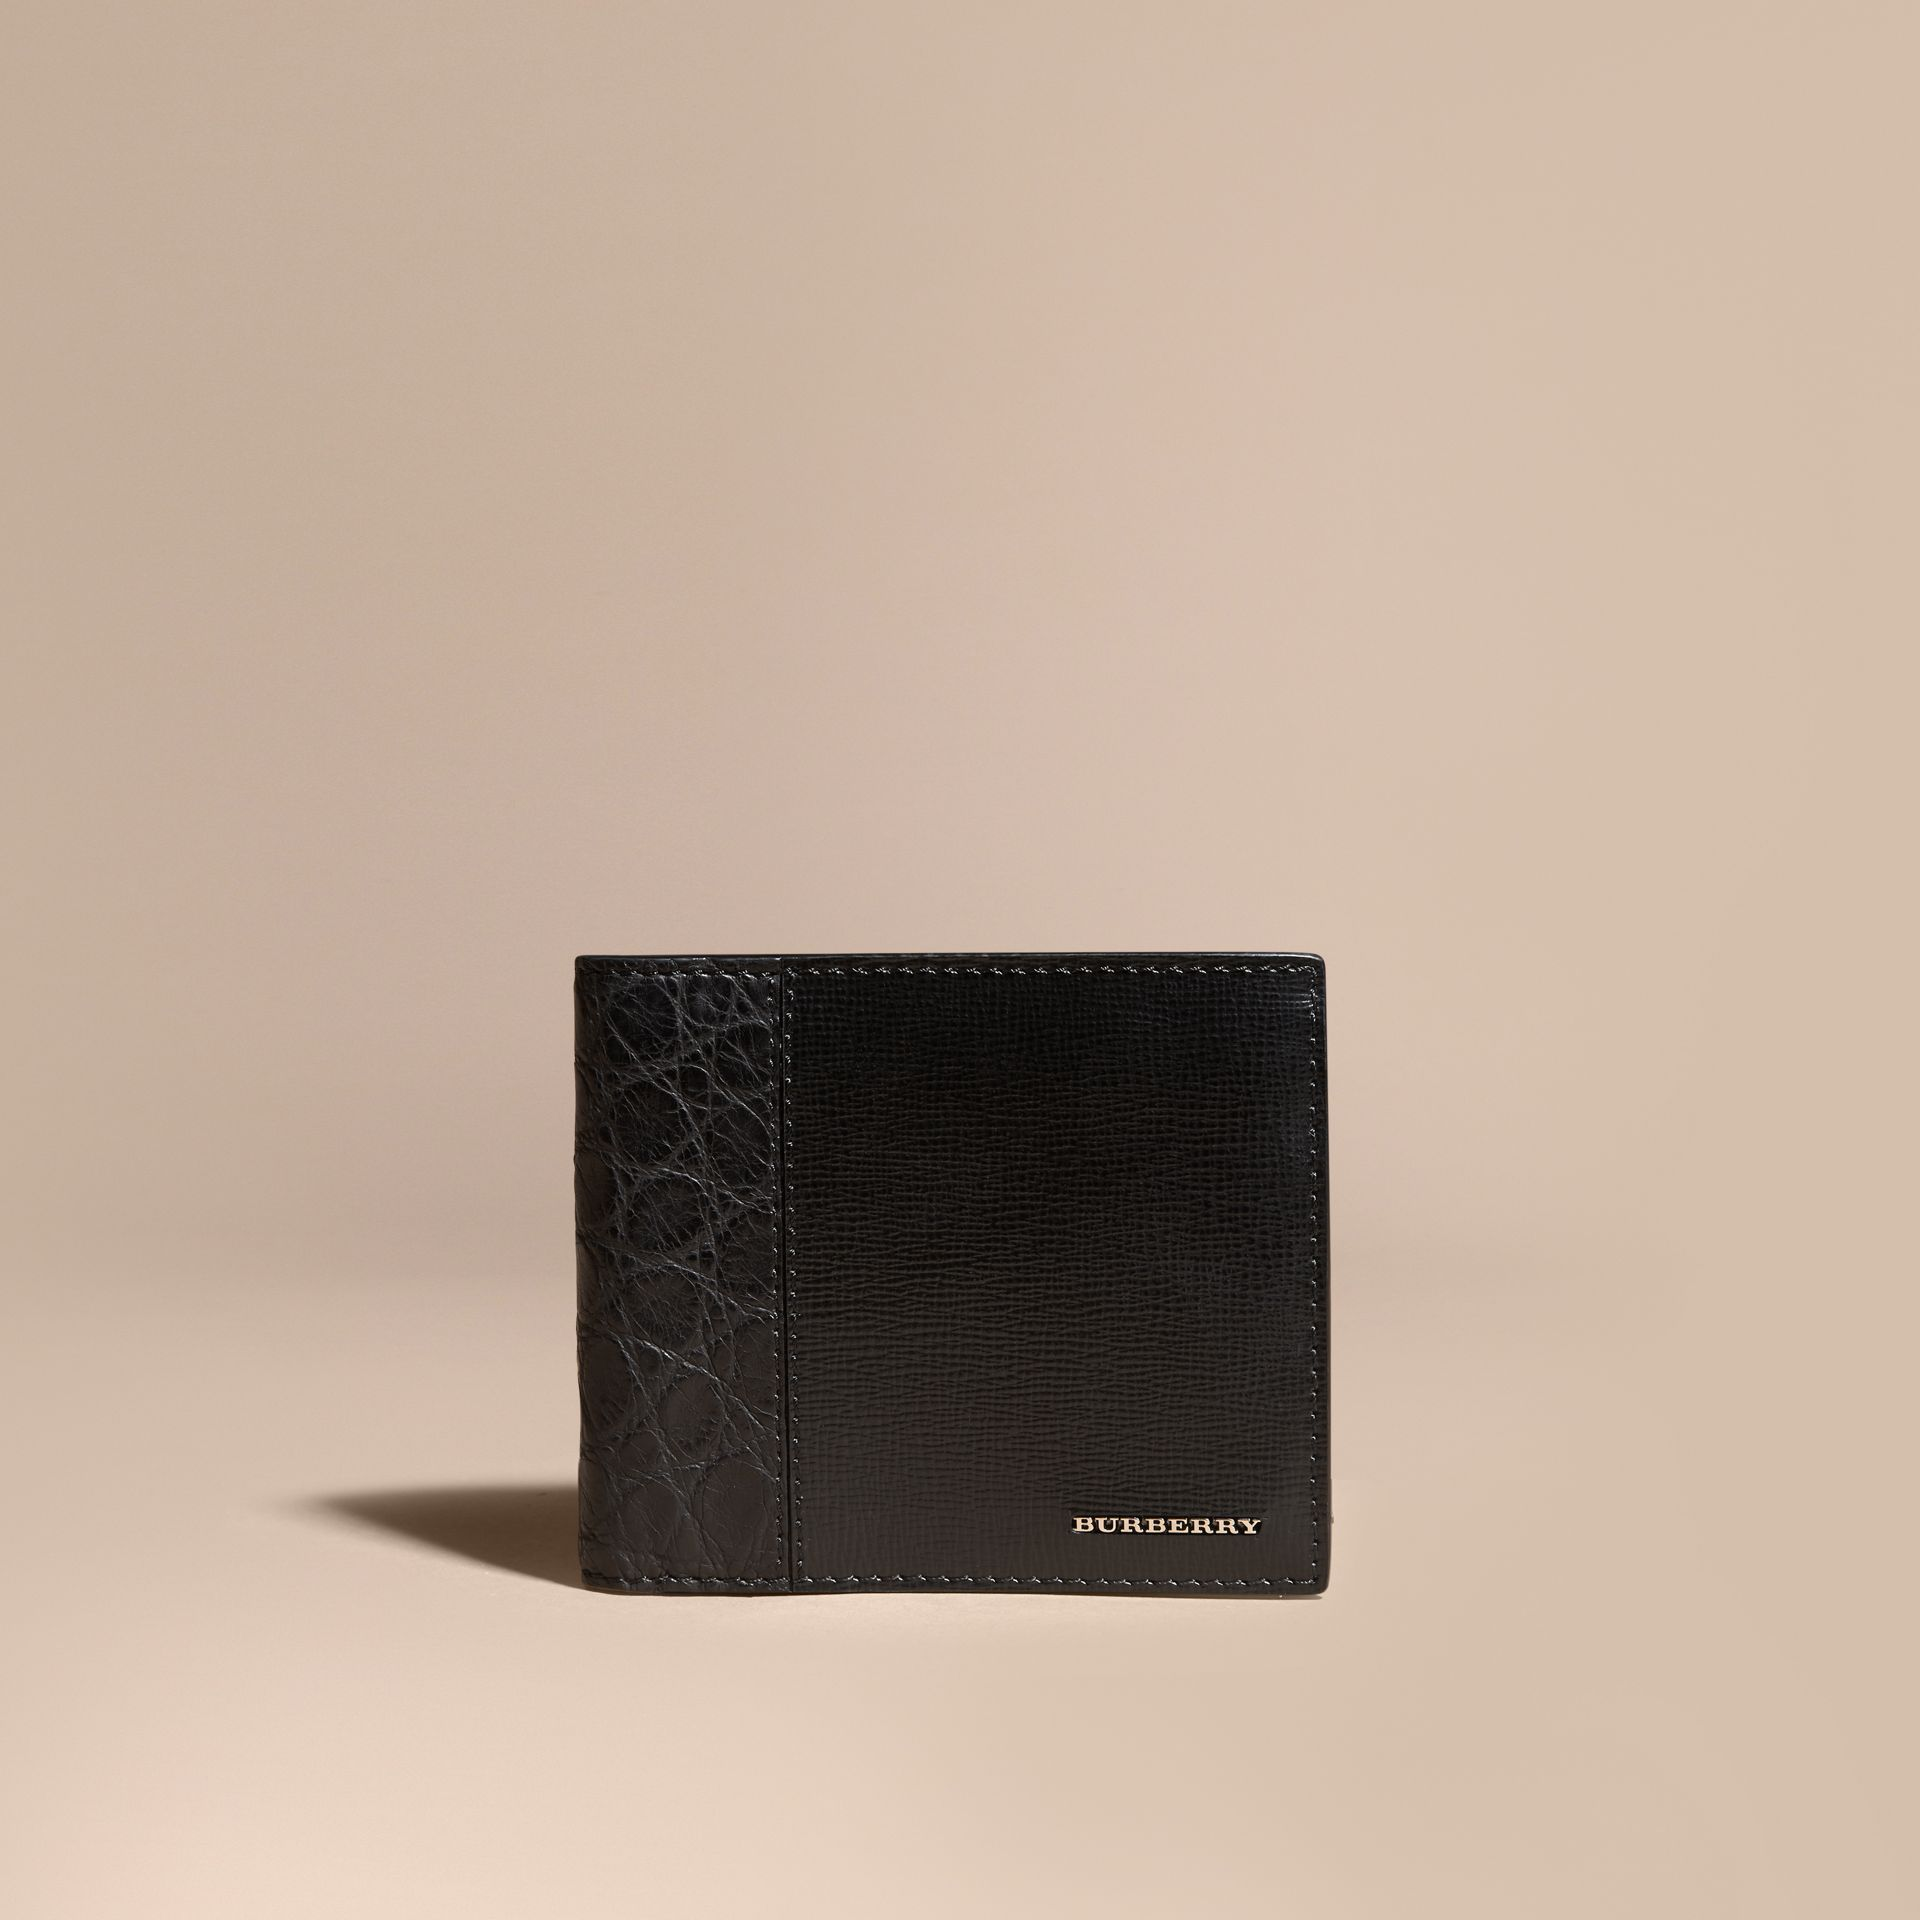 Leather and Alligator International Bifold Wallet in Black - Men | Burberry Hong Kong - gallery image 6